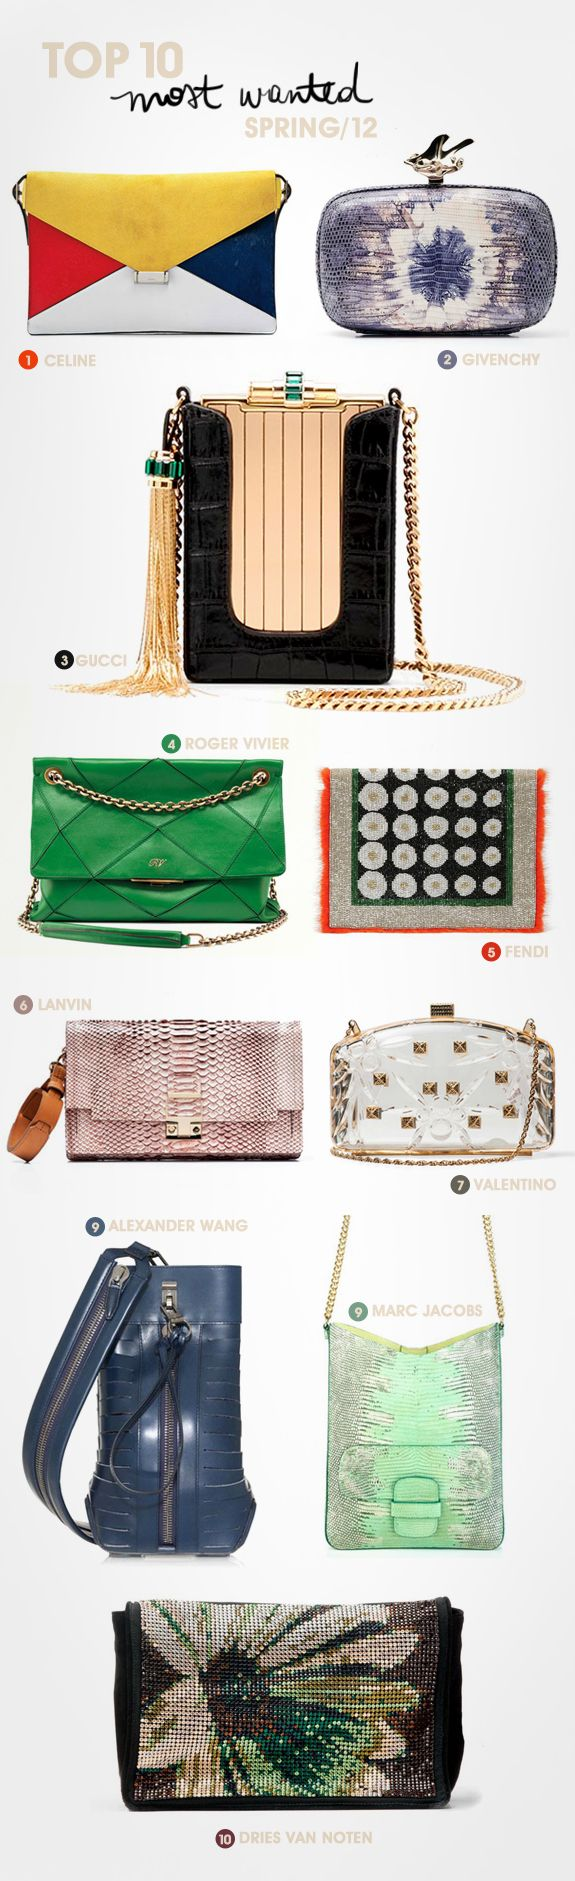 Top 10 most wanted – bags edition